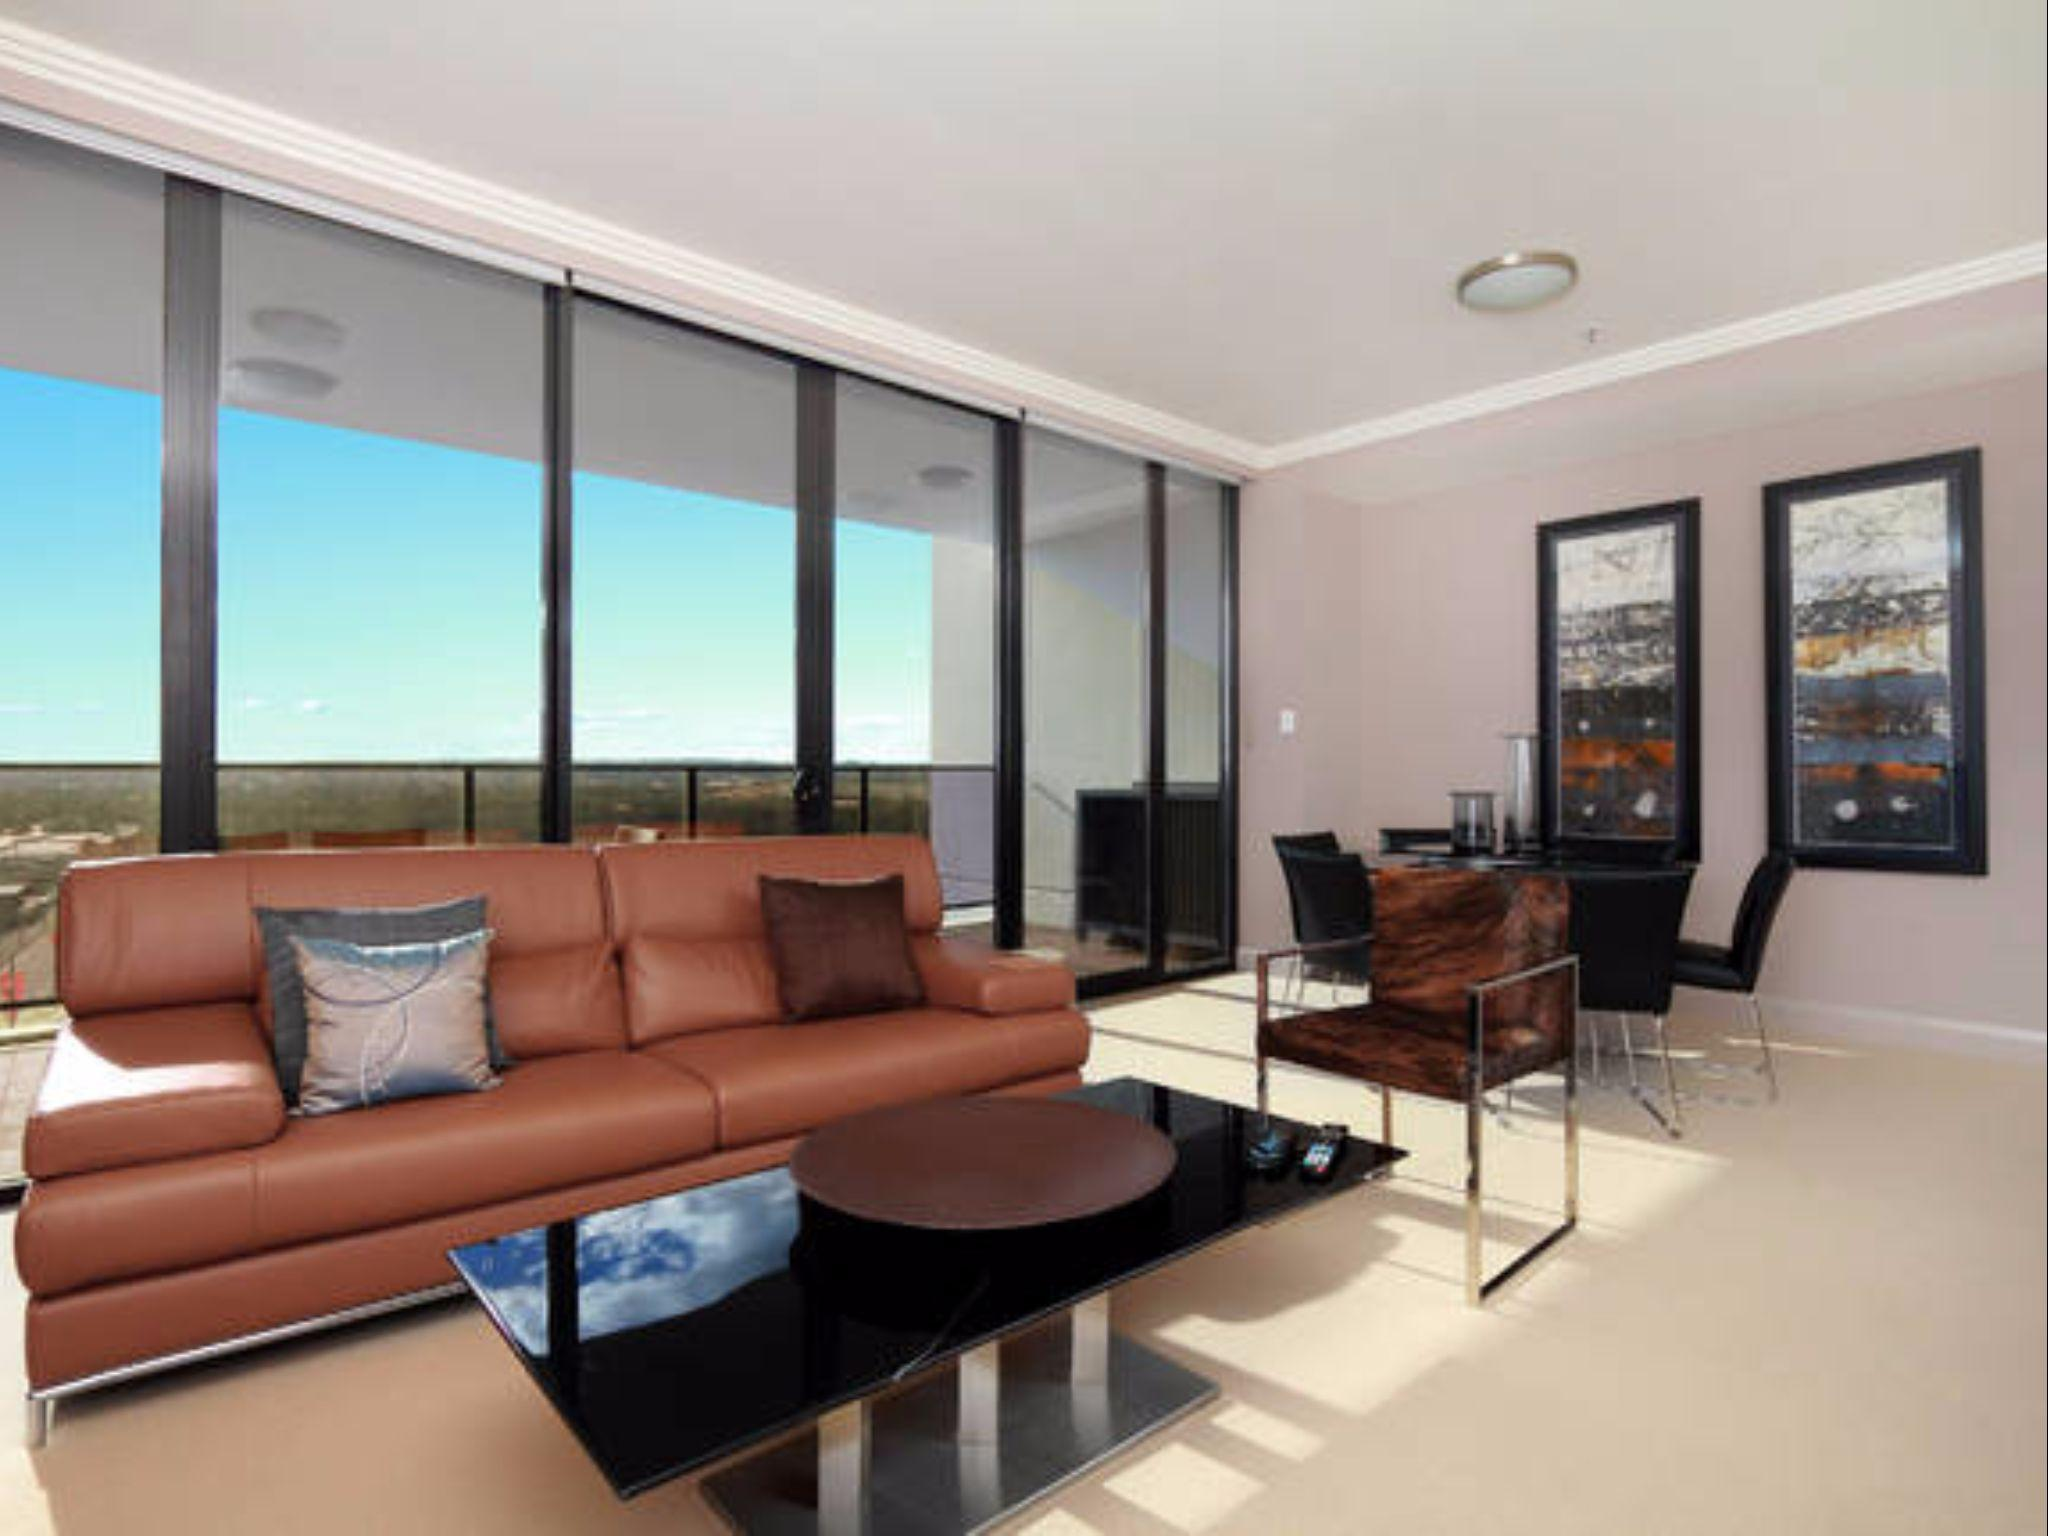 3 Bedroom With Showground And V8 Race View